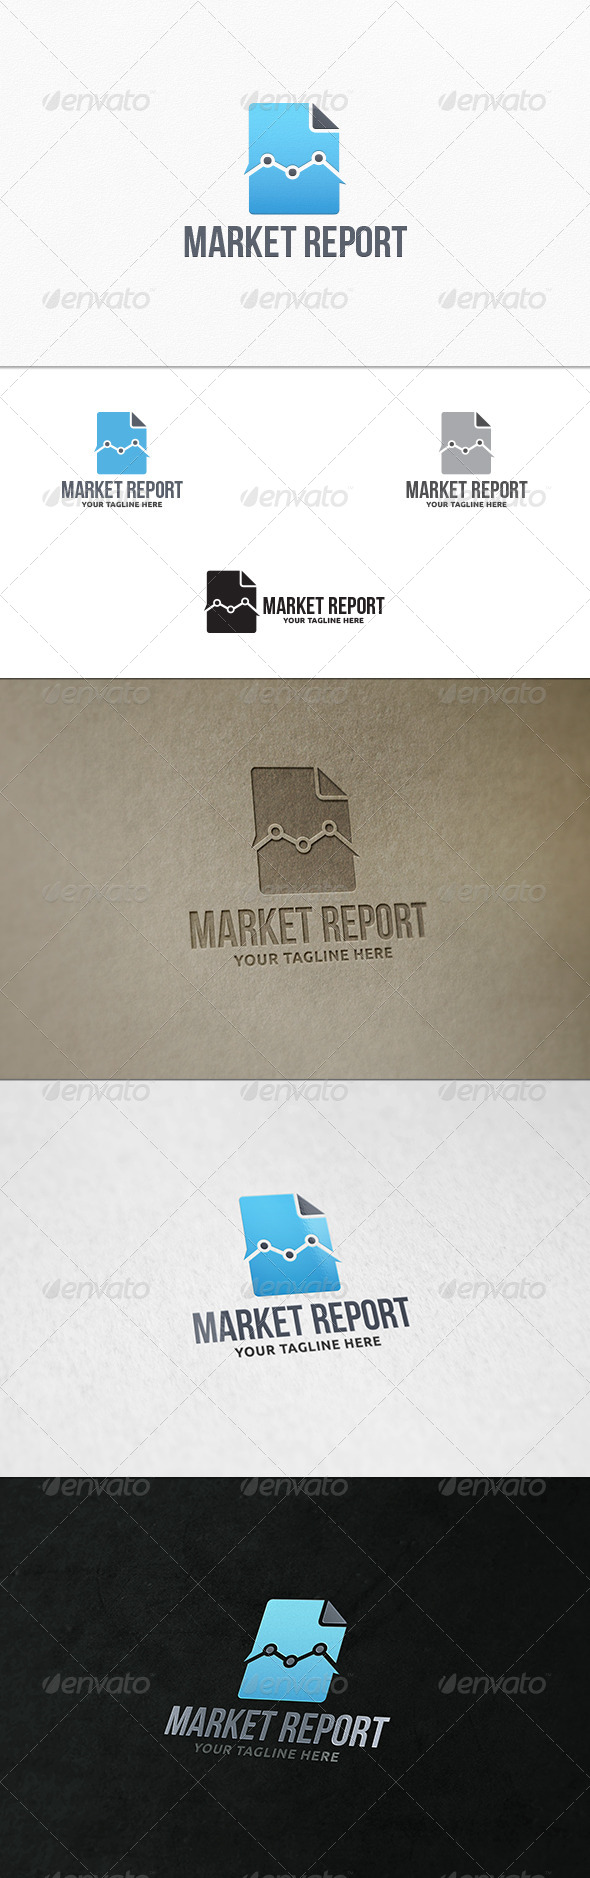 GraphicRiver Market Report Logo Template 7672222